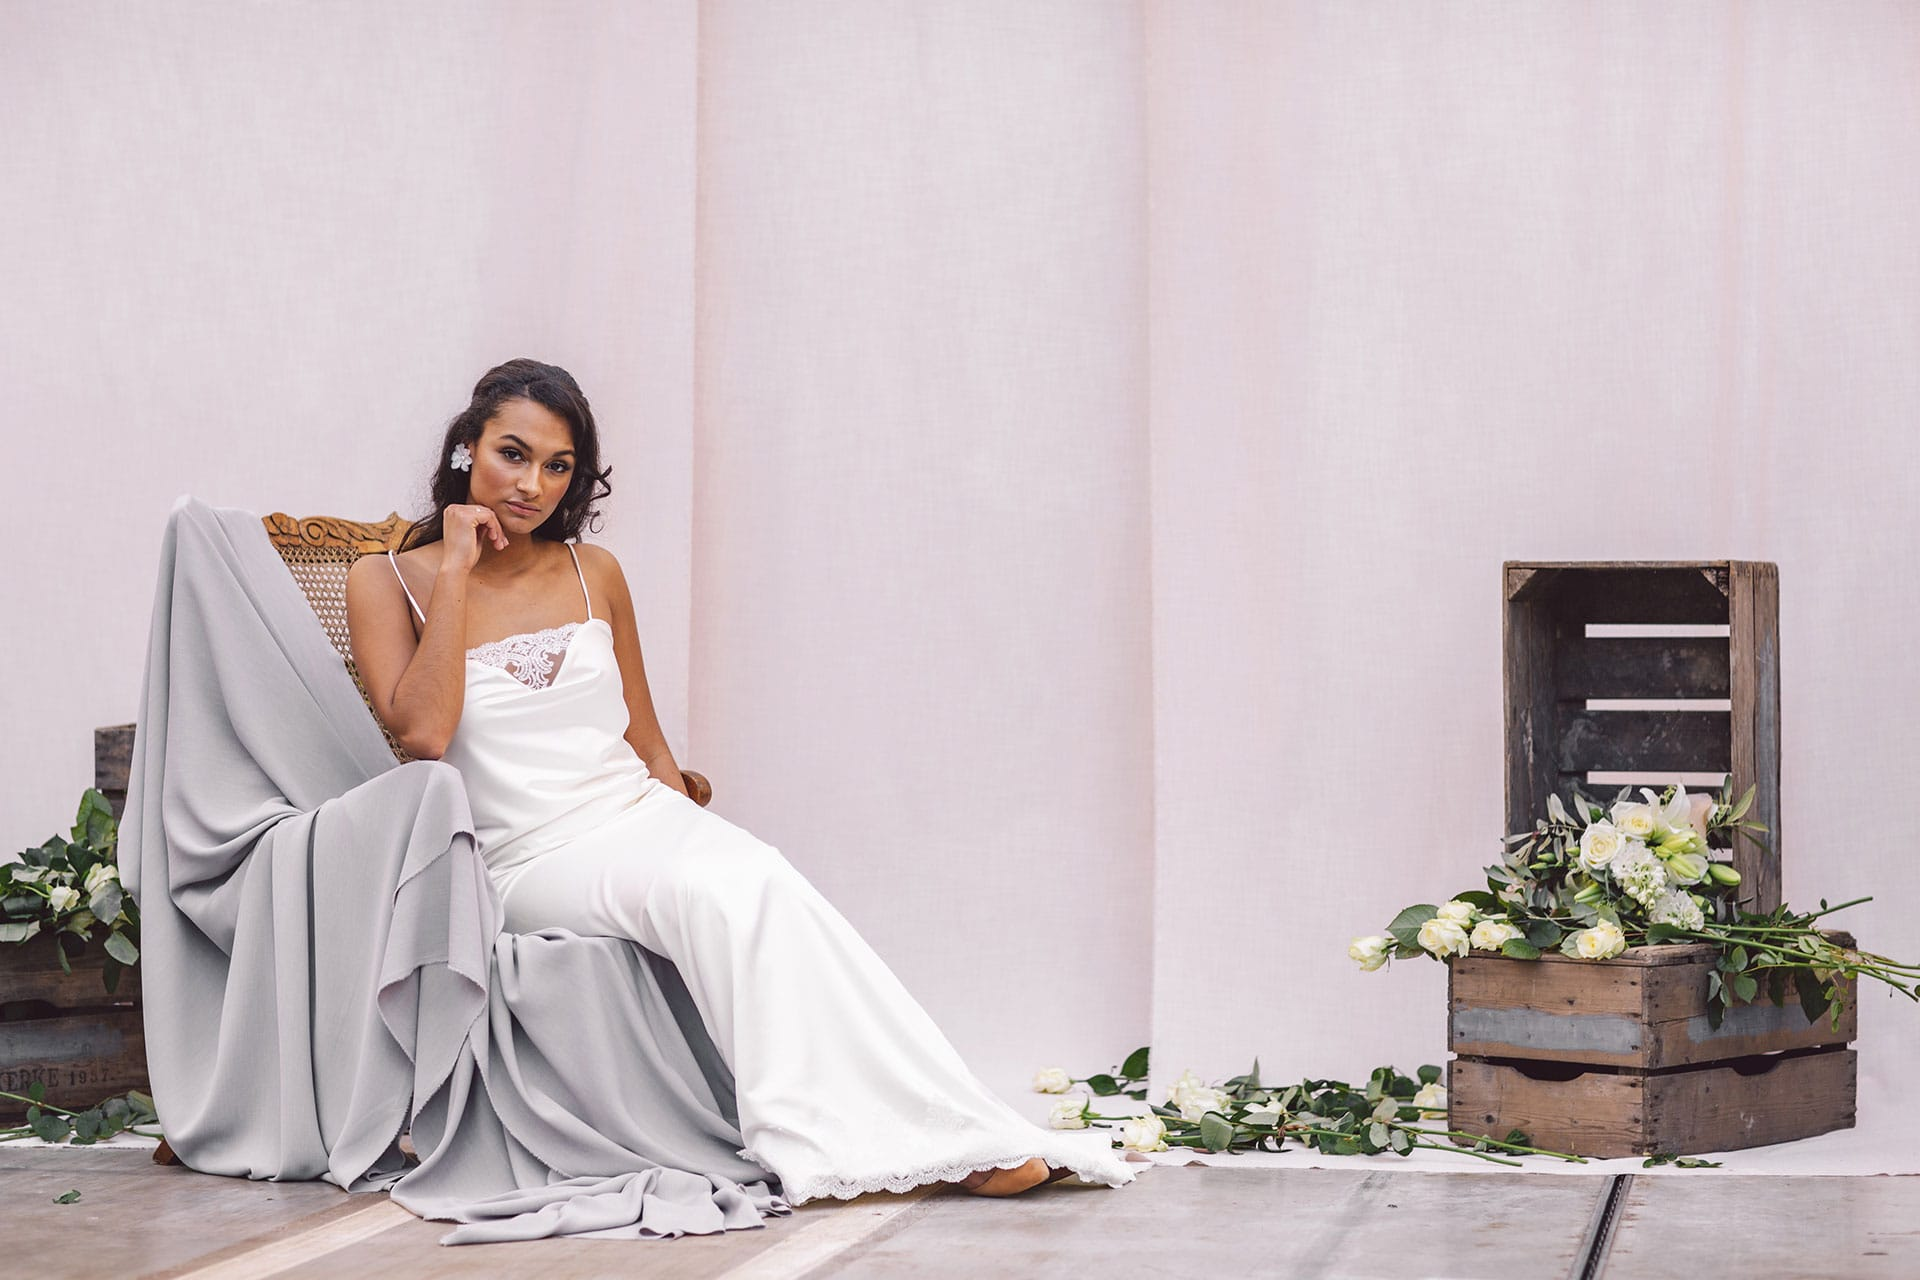 Cultural woman seated on a wooden chair in front of beige cloths with wooden boxes is wearing a white satin nightgown by Maison M'Elise